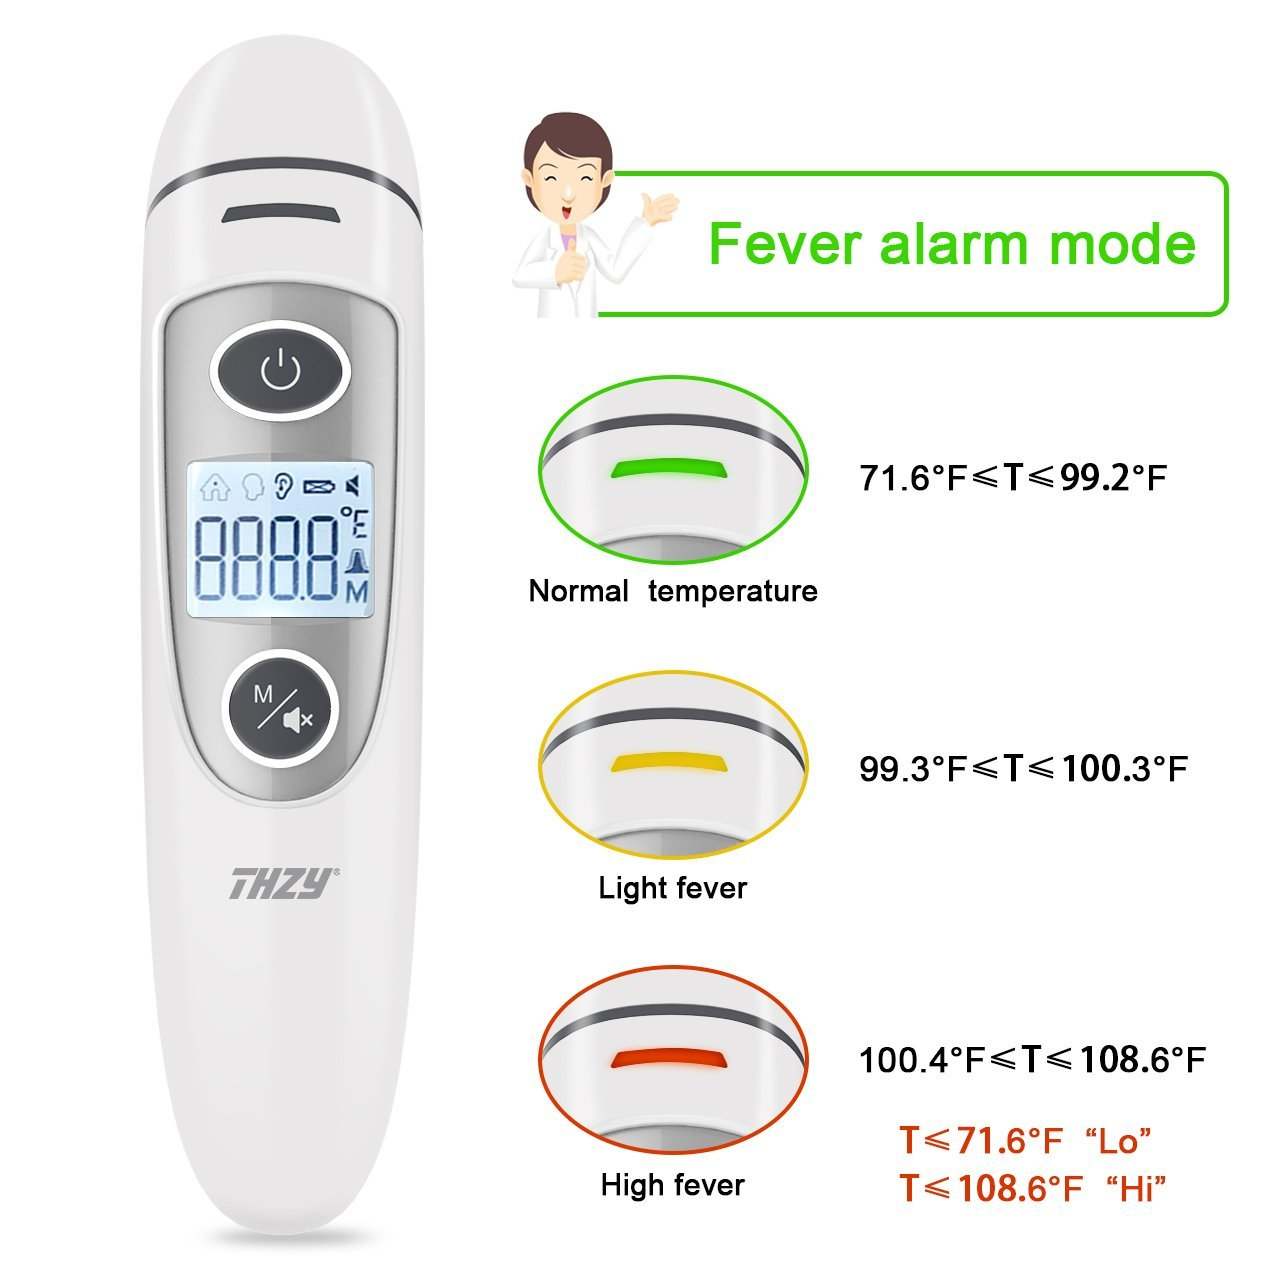 Forehead and Ear Thermometer, THZY Upgraded Digital Infrared Thermometer with Fever Indicator, Dual Mode Body Thermometer Suitable for Baby, Infants, Toddlers and Adult CE&FDA Approved by THZY (Image #5)